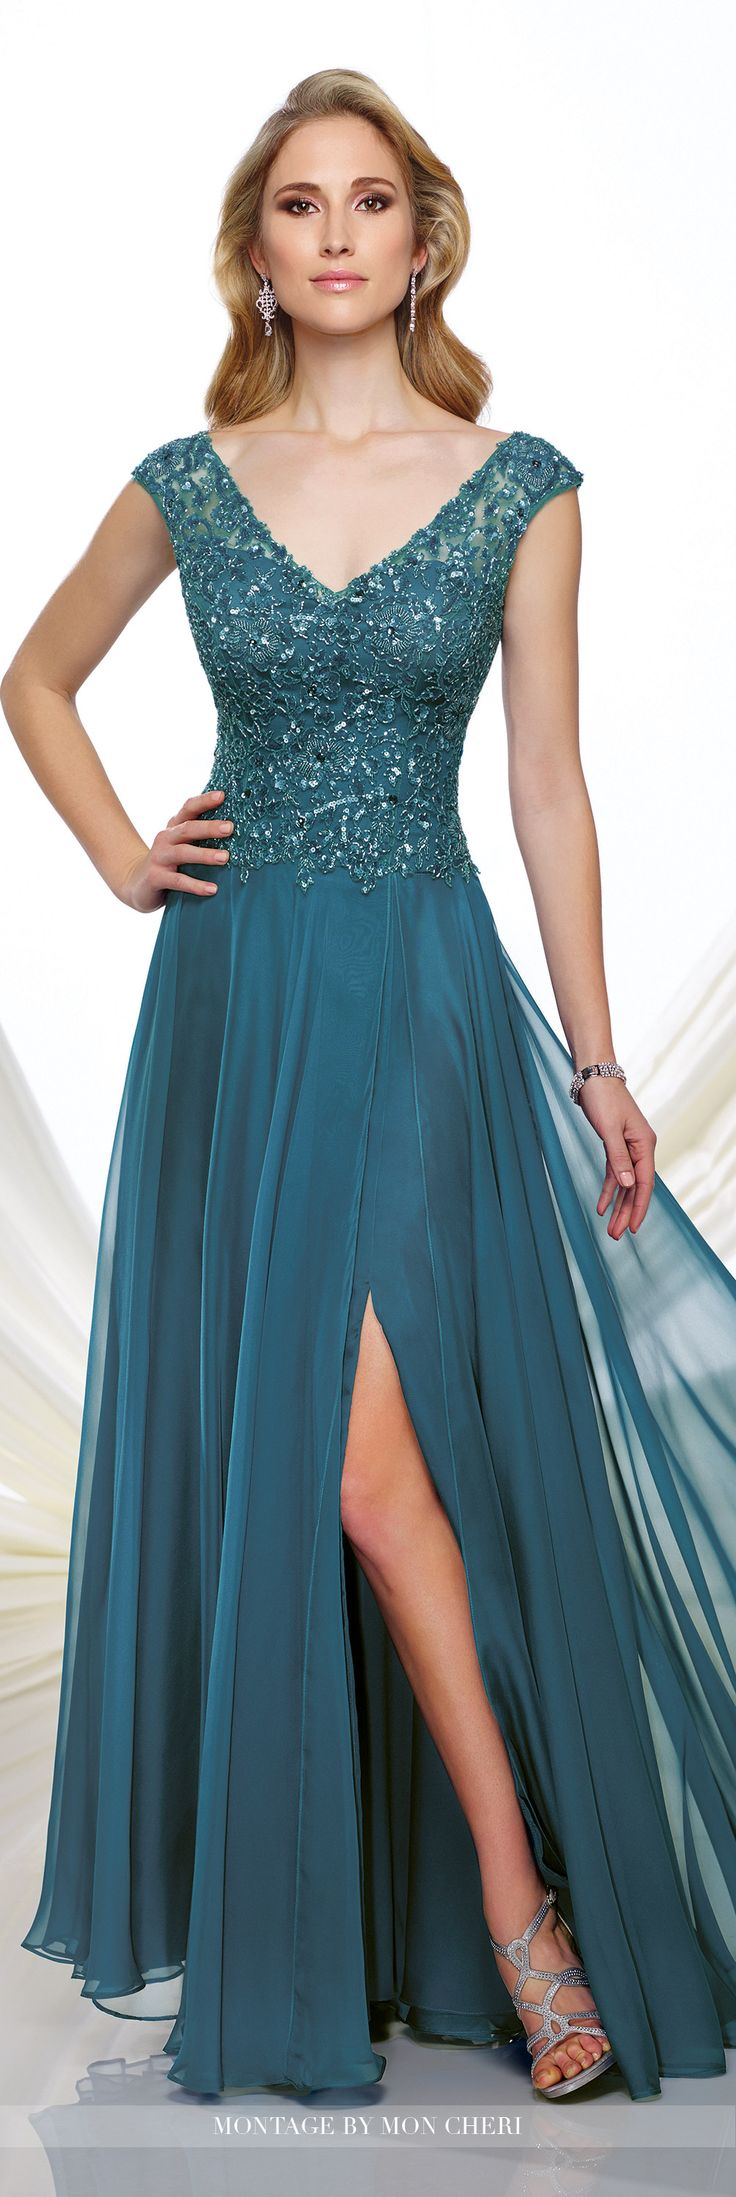 627 best Formal Wear in Shades of Blue images on Pinterest ...